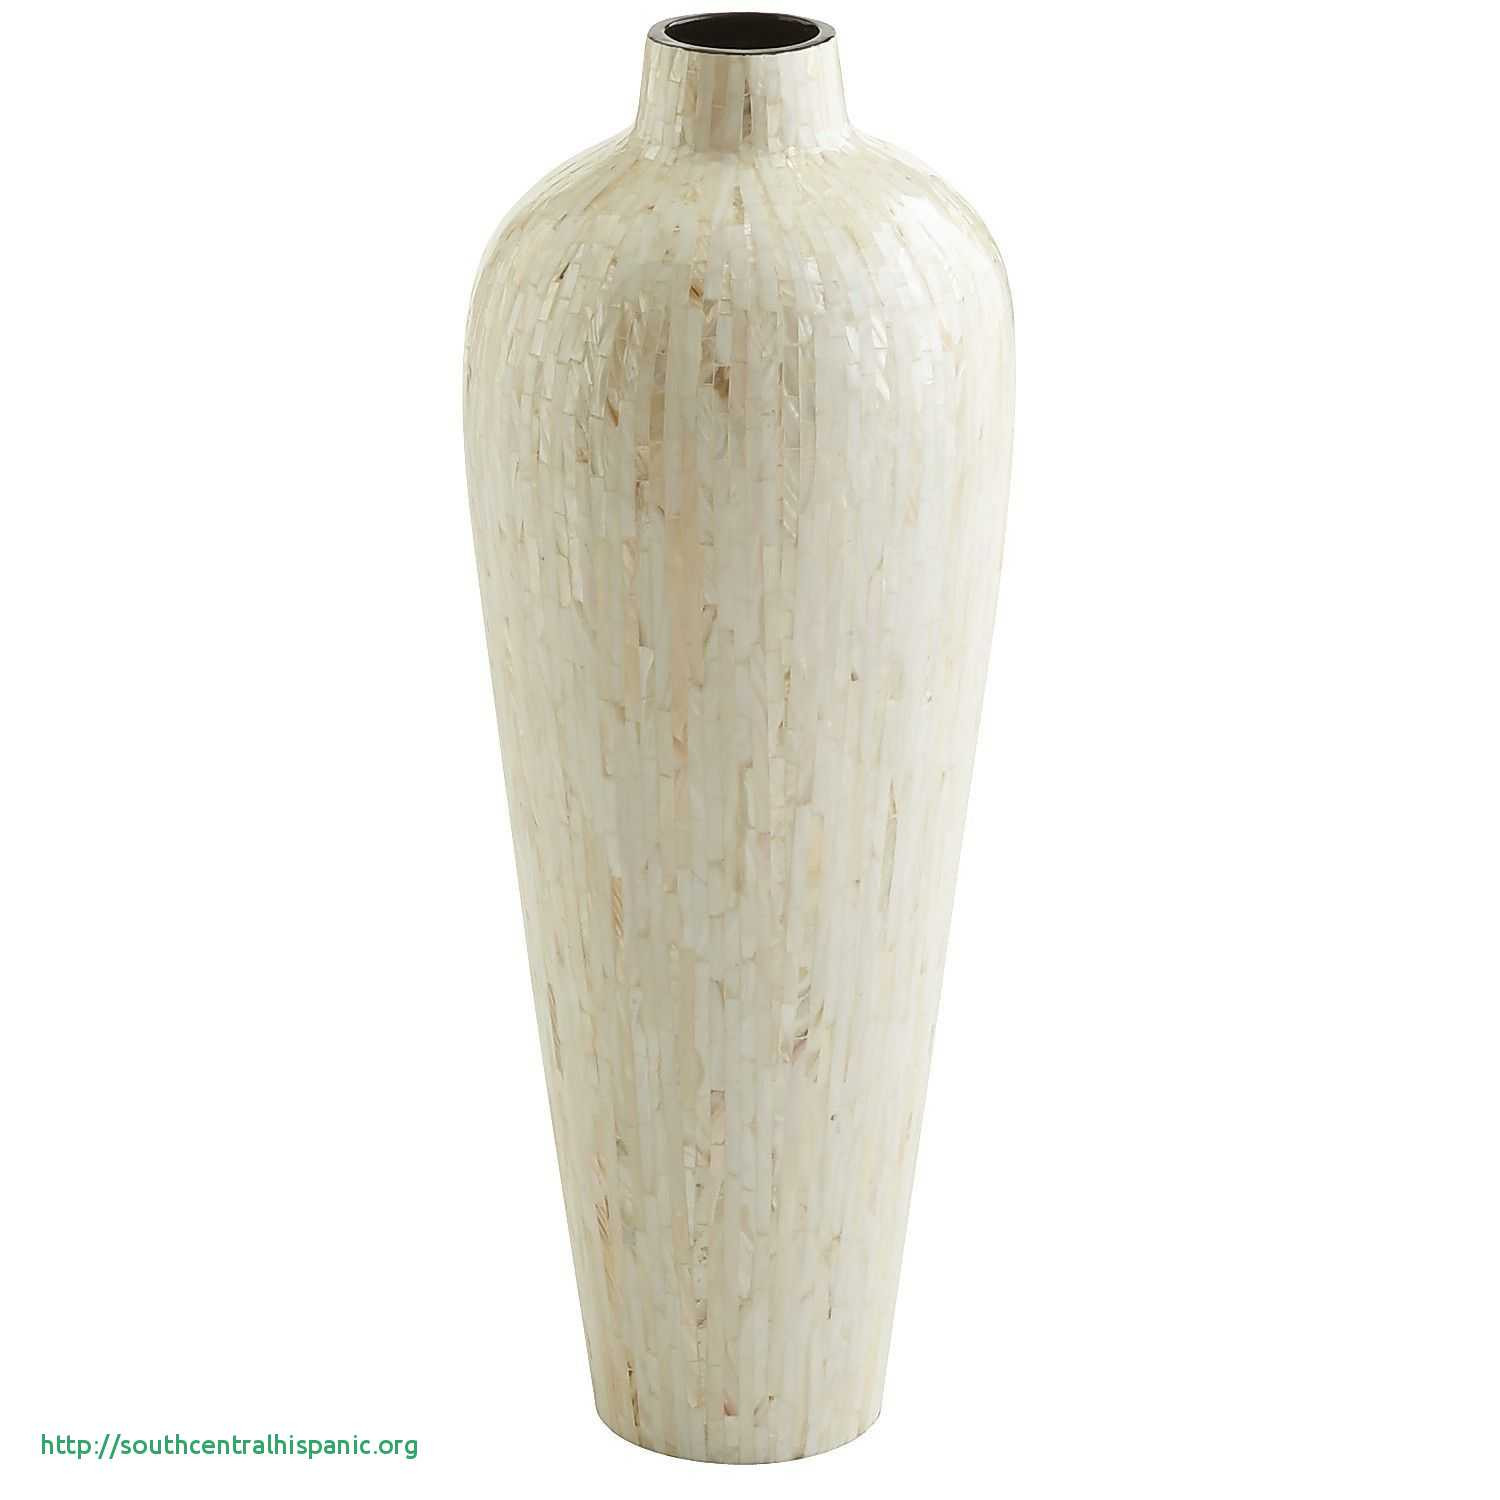 rustic floor vase of perl floor luxe ivory mother of pearl floor vase decor vases ideas throughout perl floor luxe ivory mother of pearl floor vase decor vases